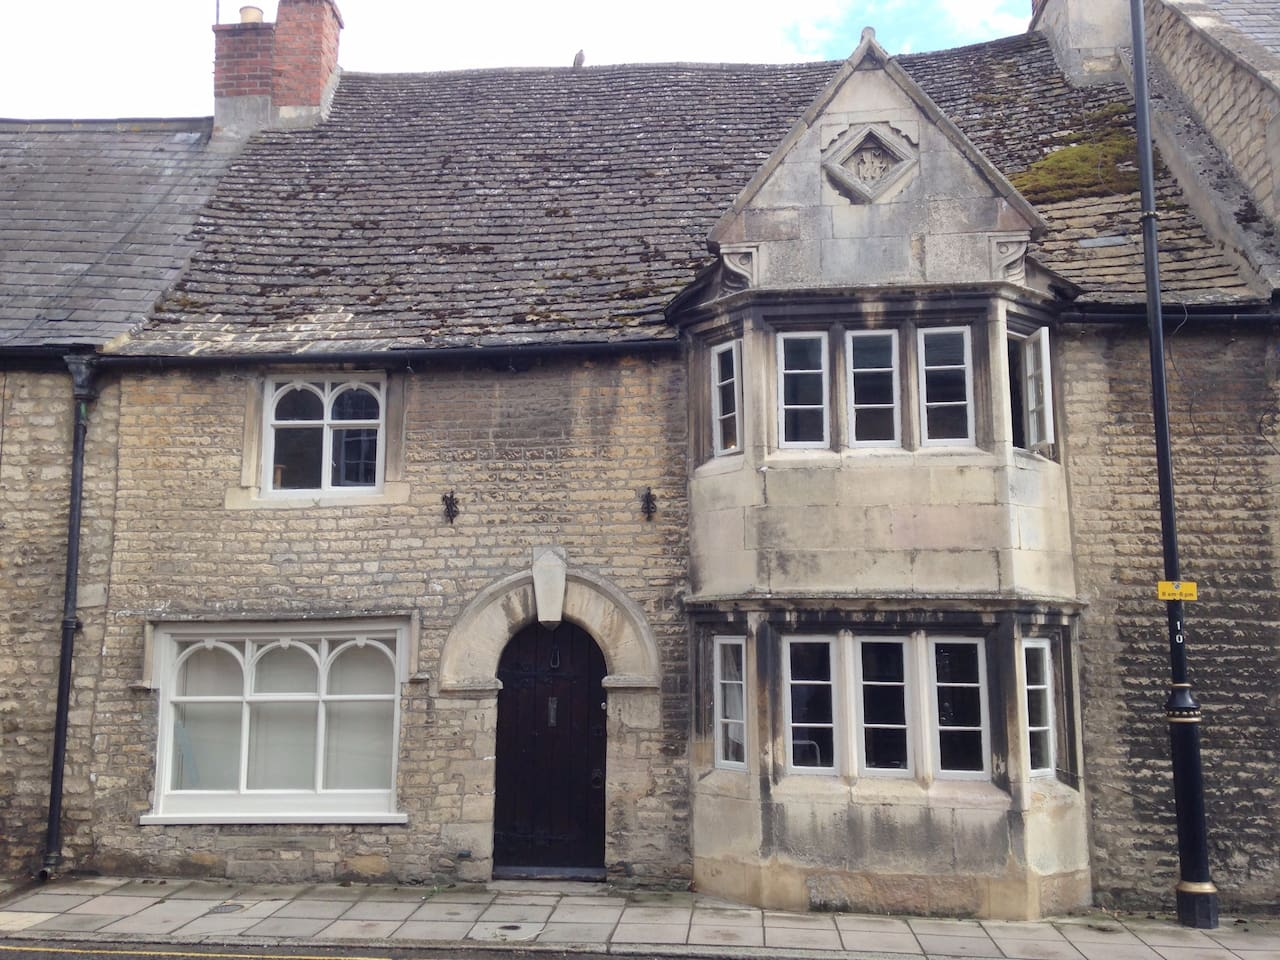 Traditional Tudor stone townhouse in central stamford with walled garden.